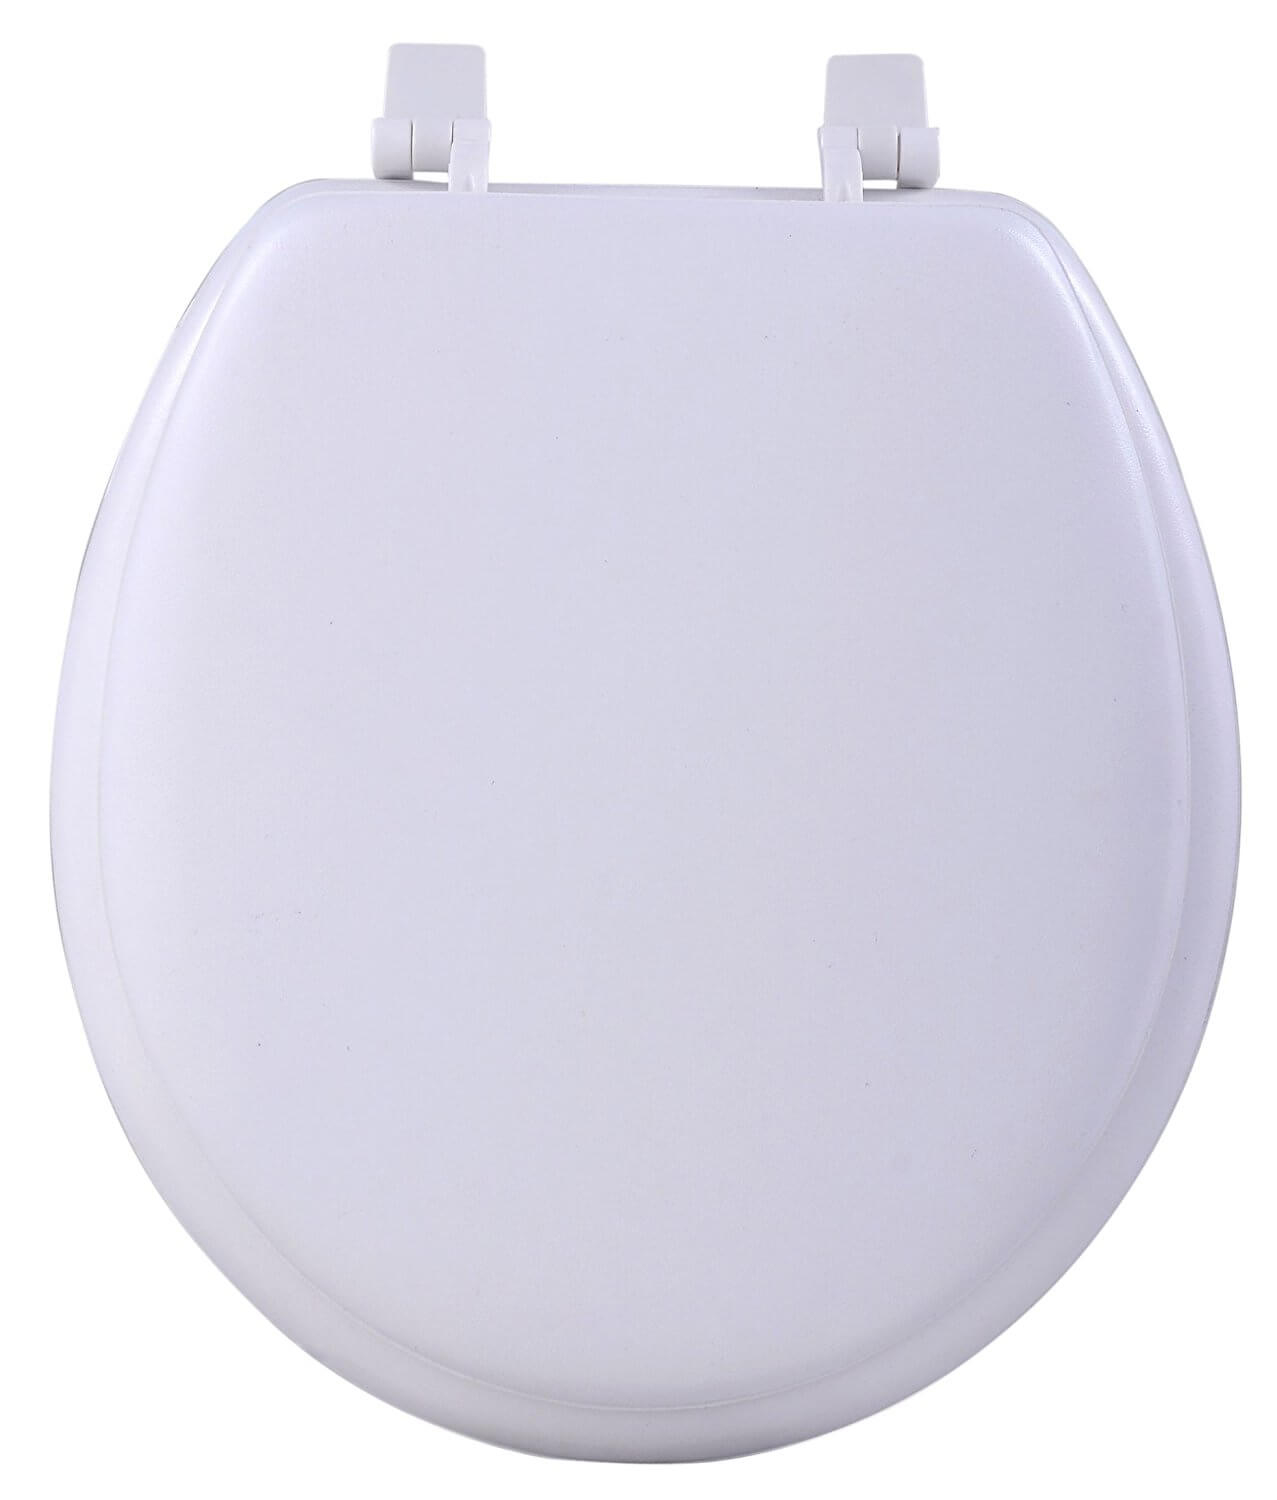 Best toilet on the market reviews - Best Toilet Seat